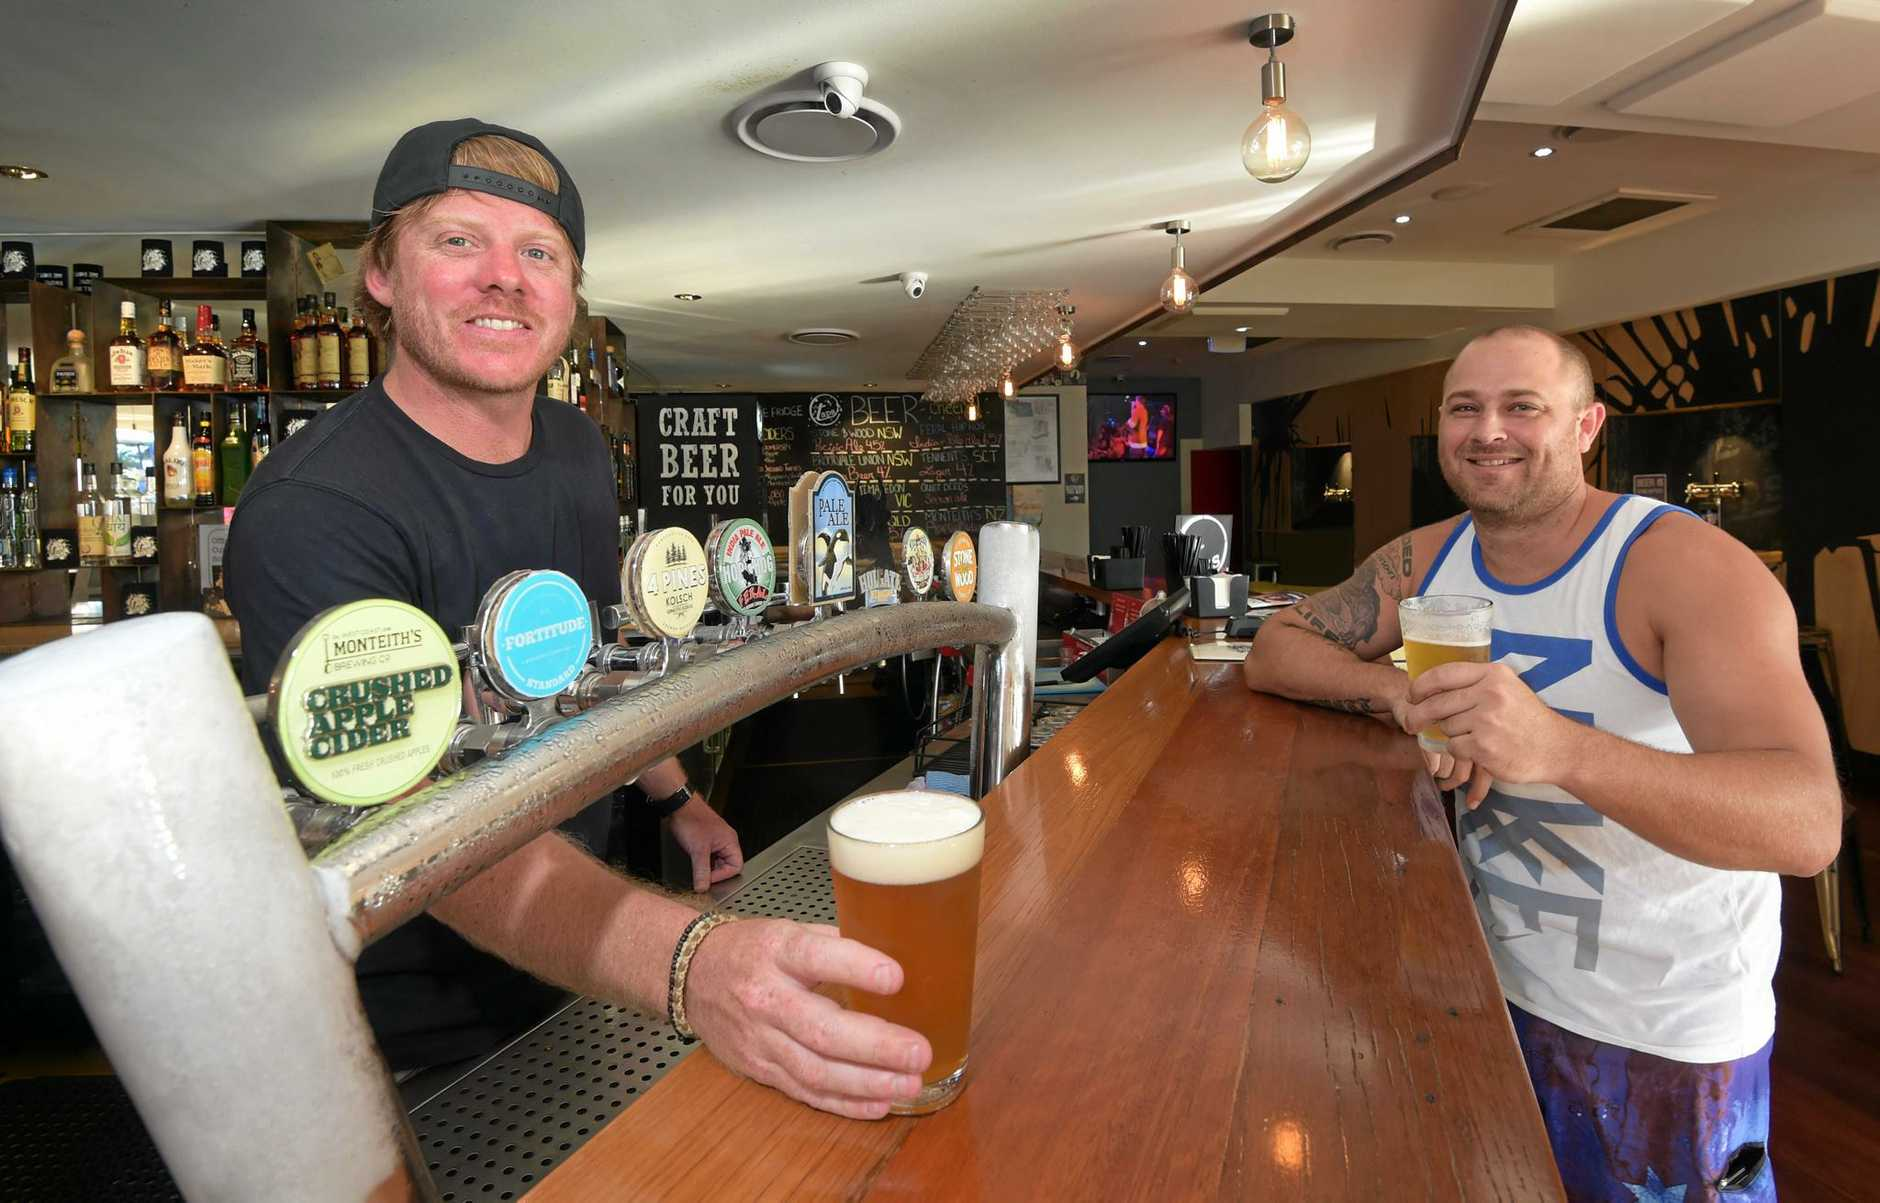 Owner of Taps Mooloolaba, Steve Barber, serves up a craft beer. Photo: Brett Wortman / Sunshine Coast Daily